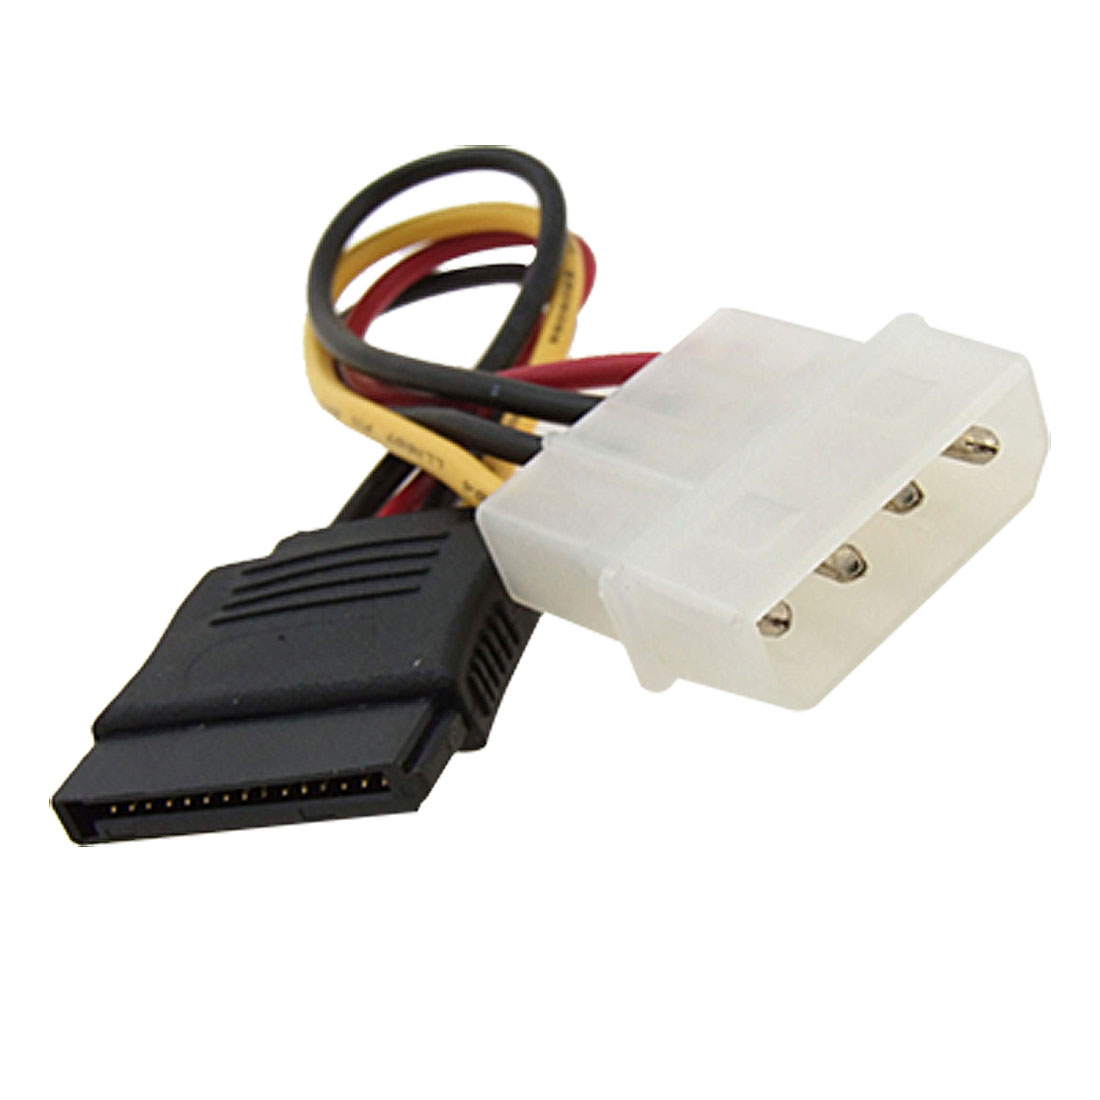 4 Pin IDE to 15 Pin Serial SATA Power Cable Adapter